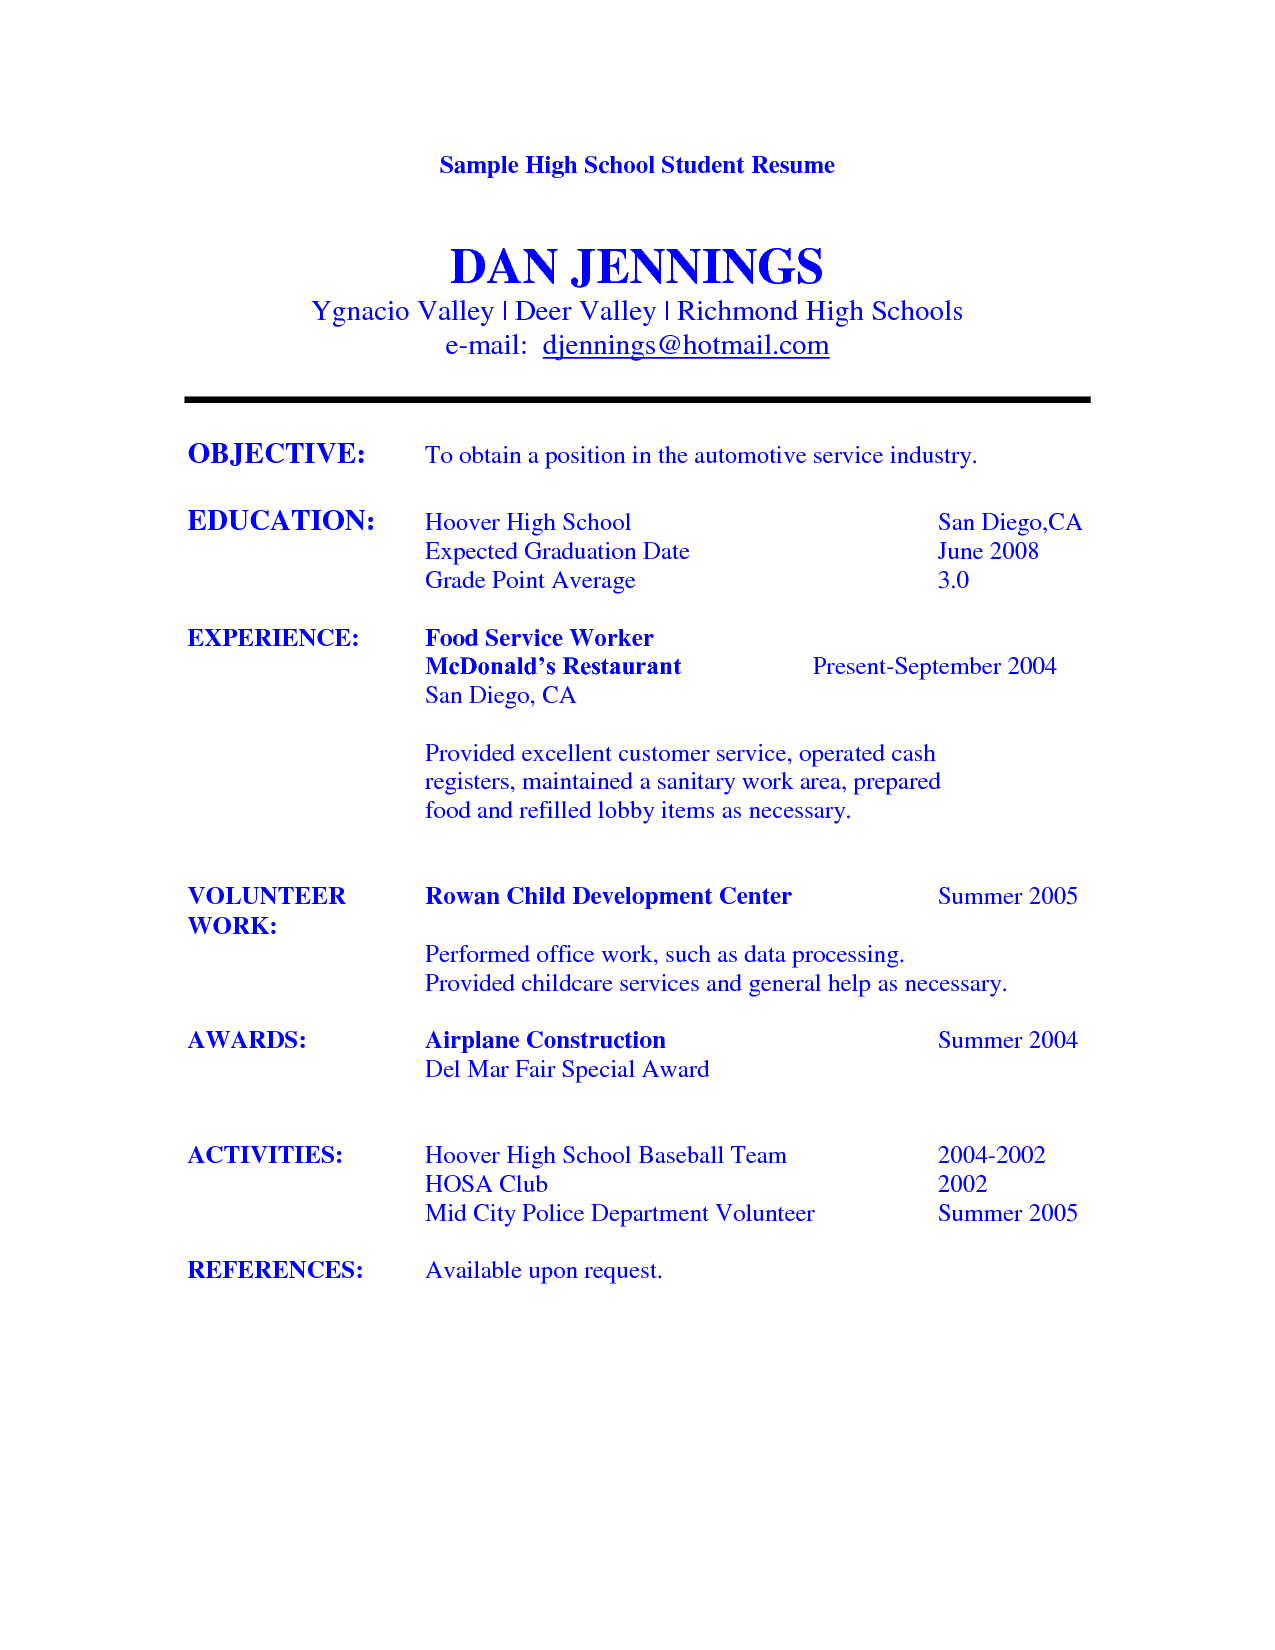 Resume writing for high school students quiz